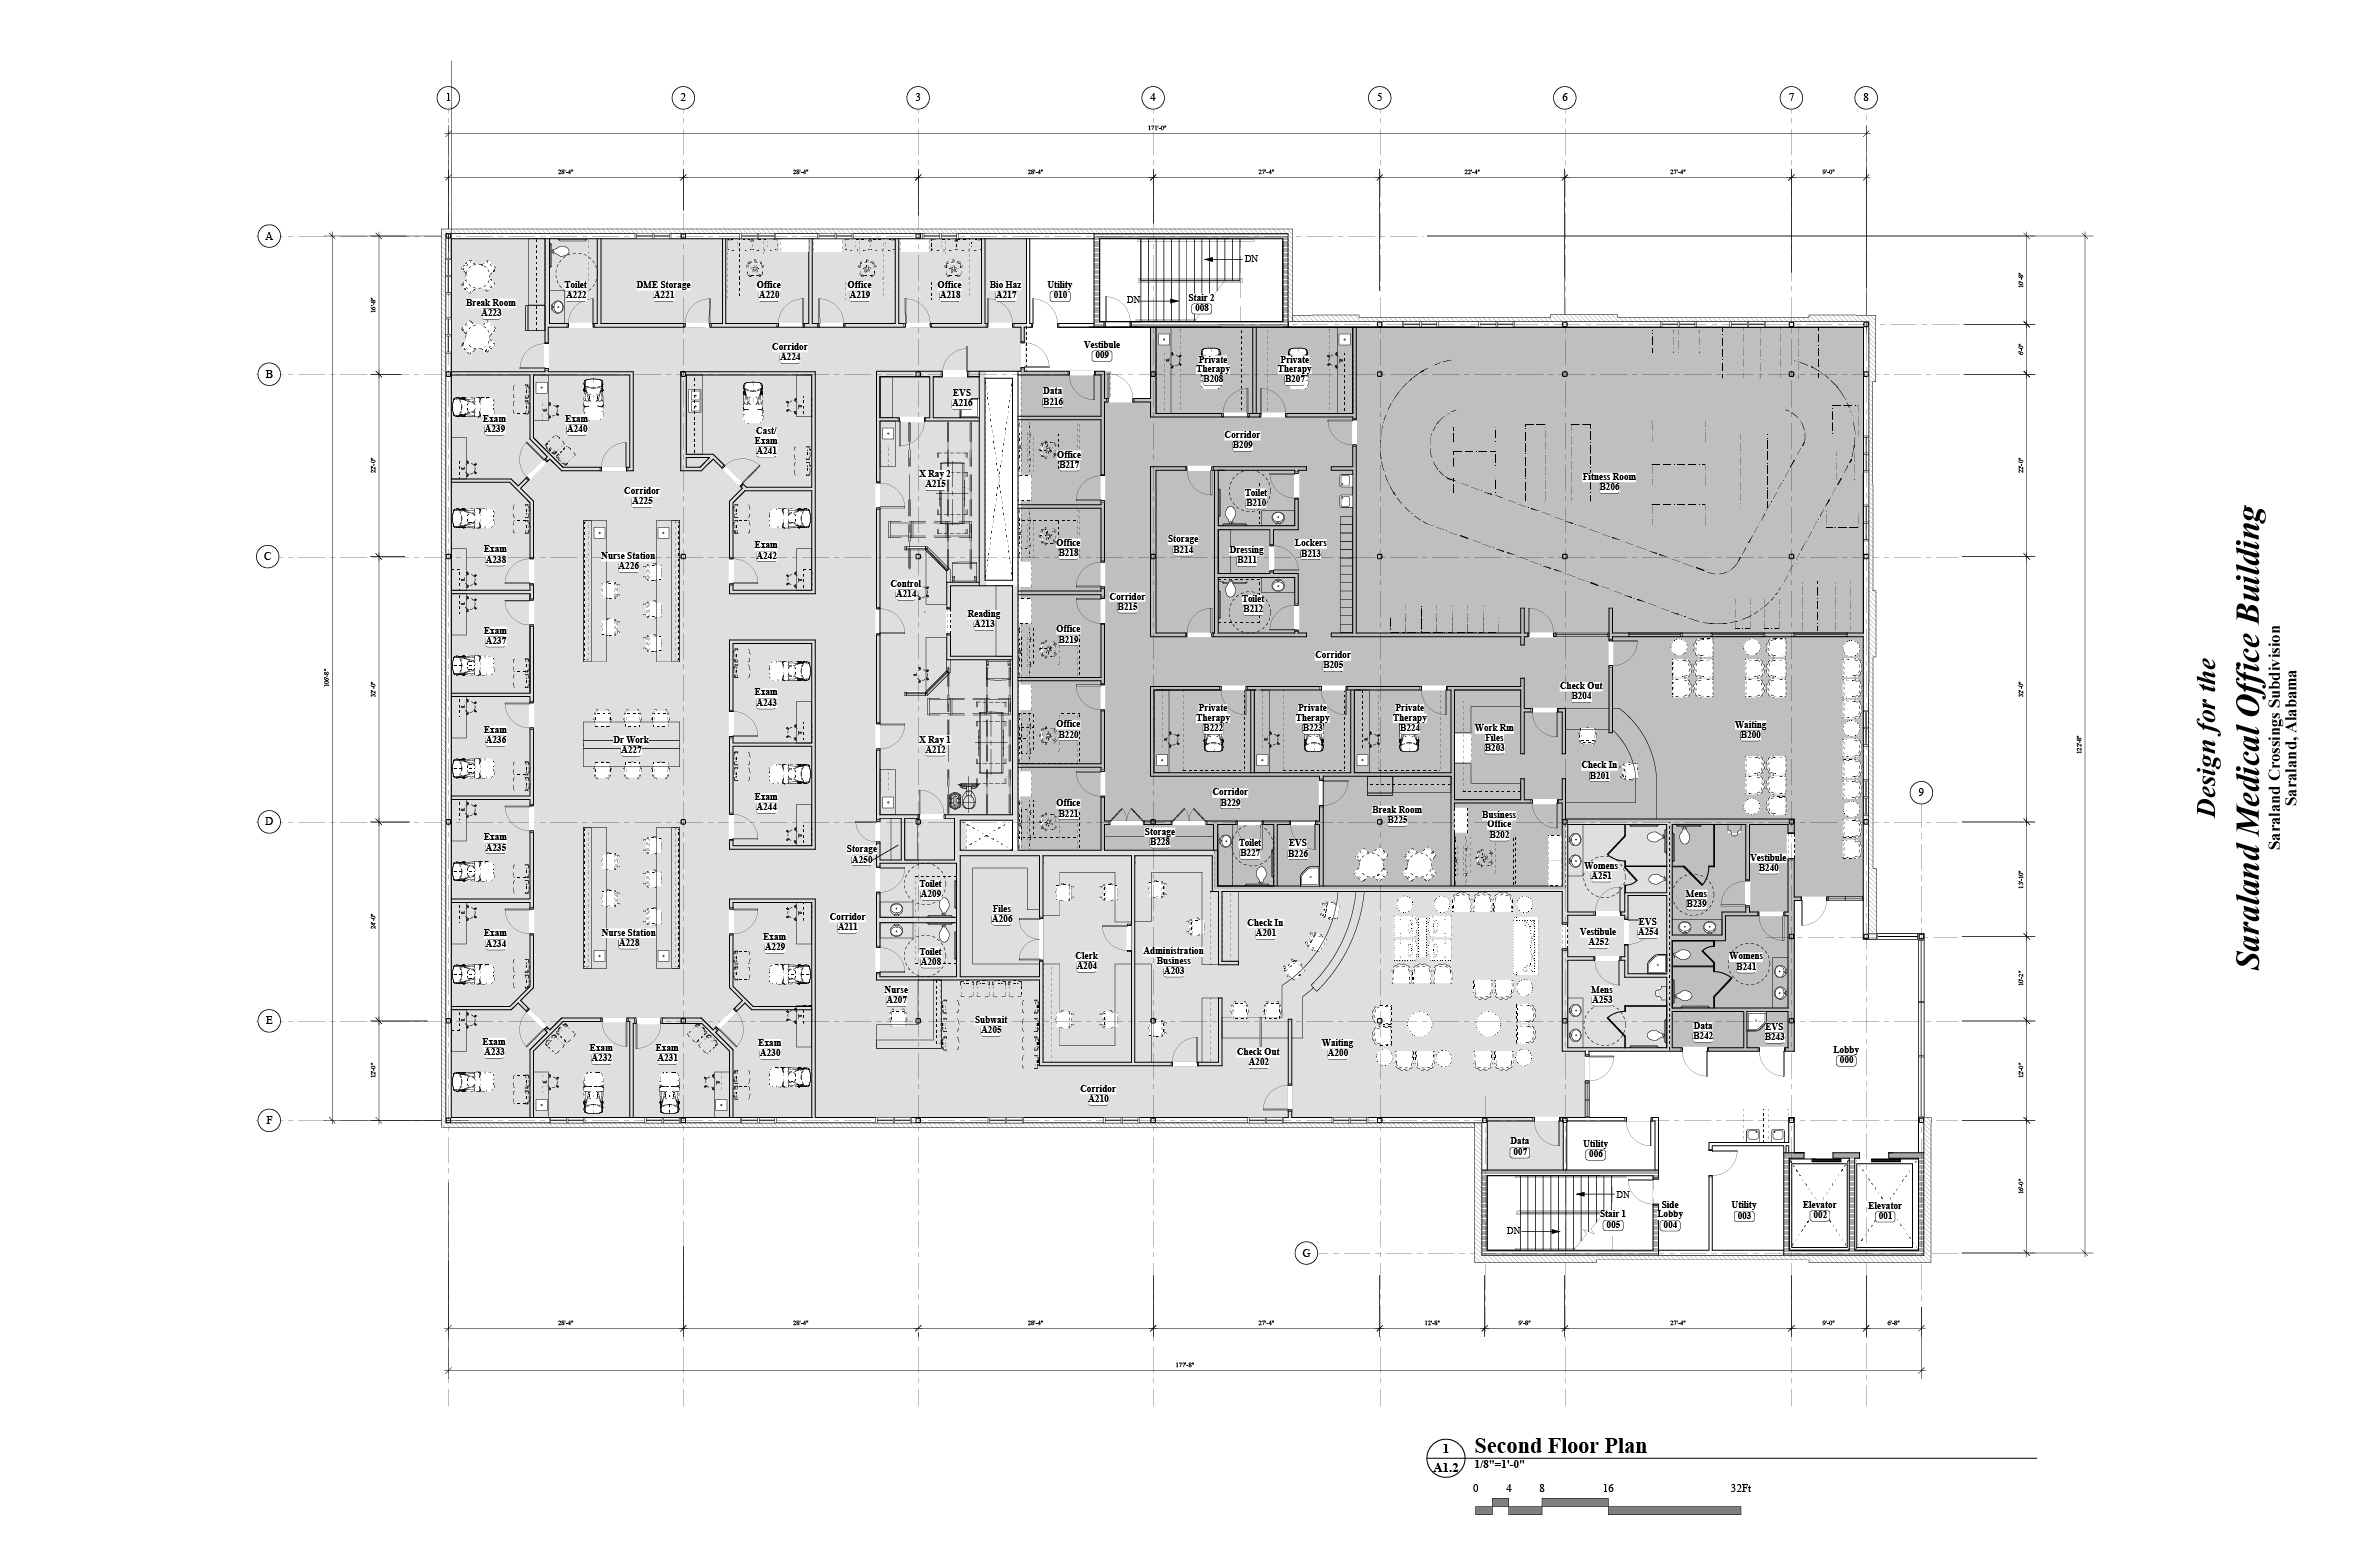 Saraland Medical Offices second floor plan